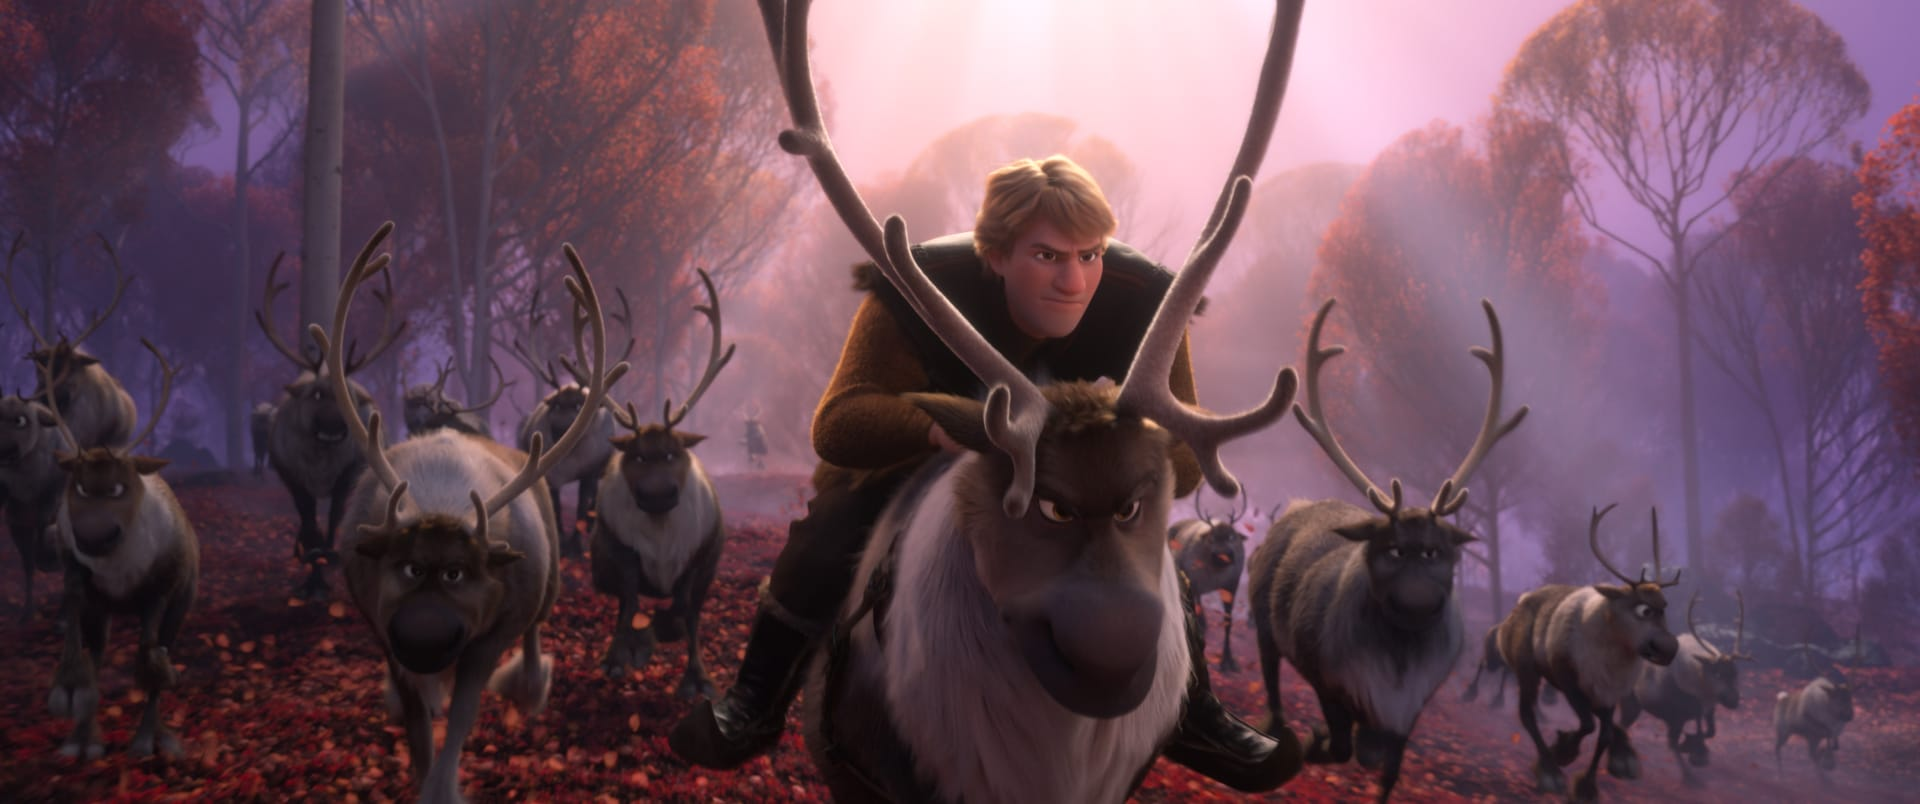 Kristoff riding on a reindeer amongst a herd reindeer